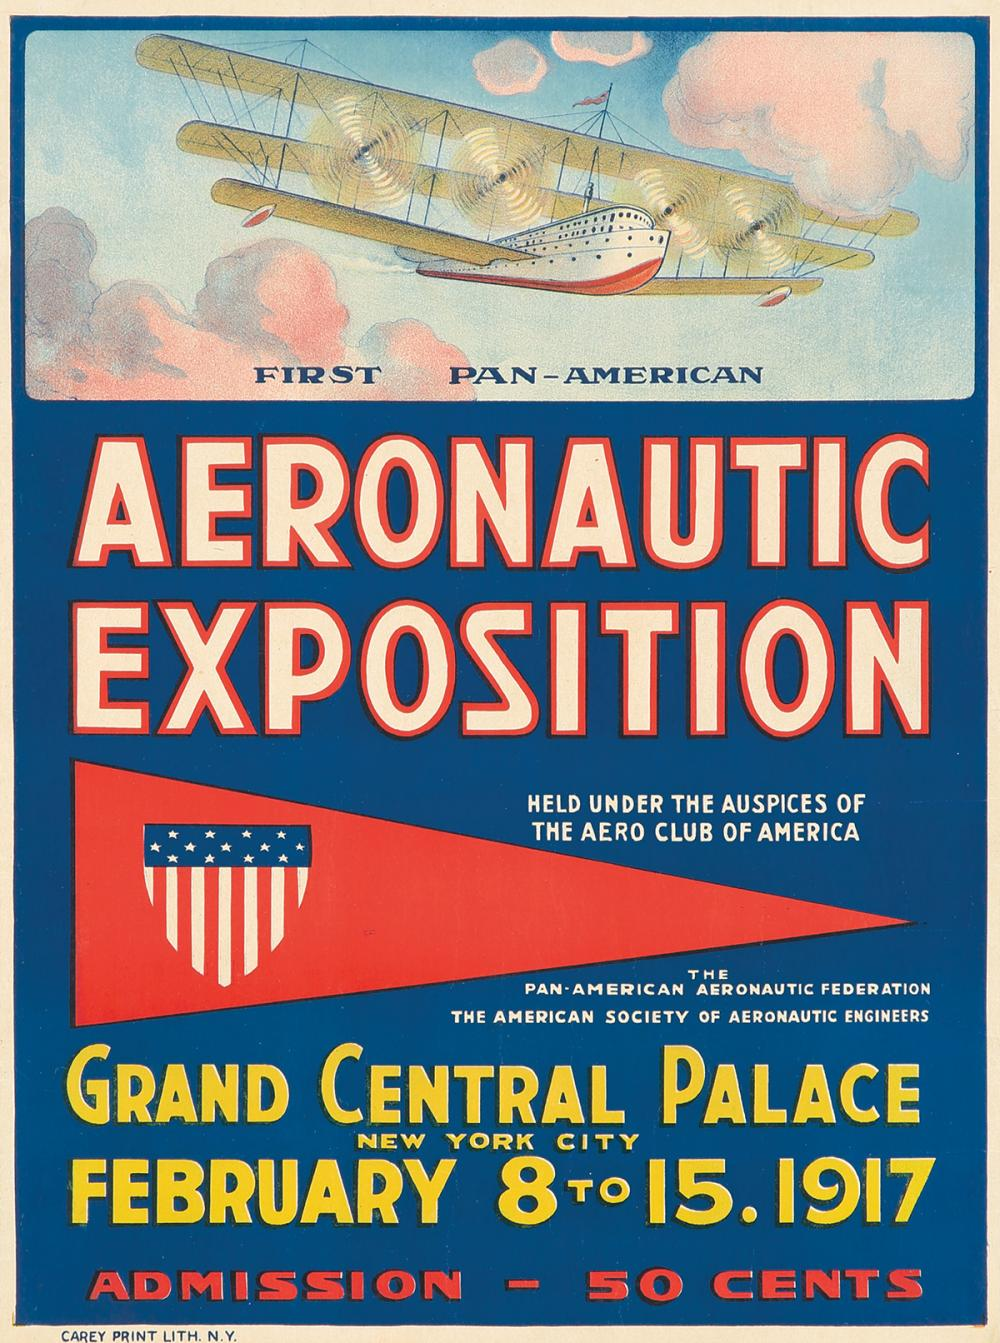 First Pan-American Aeronautic Exposition. 1917.